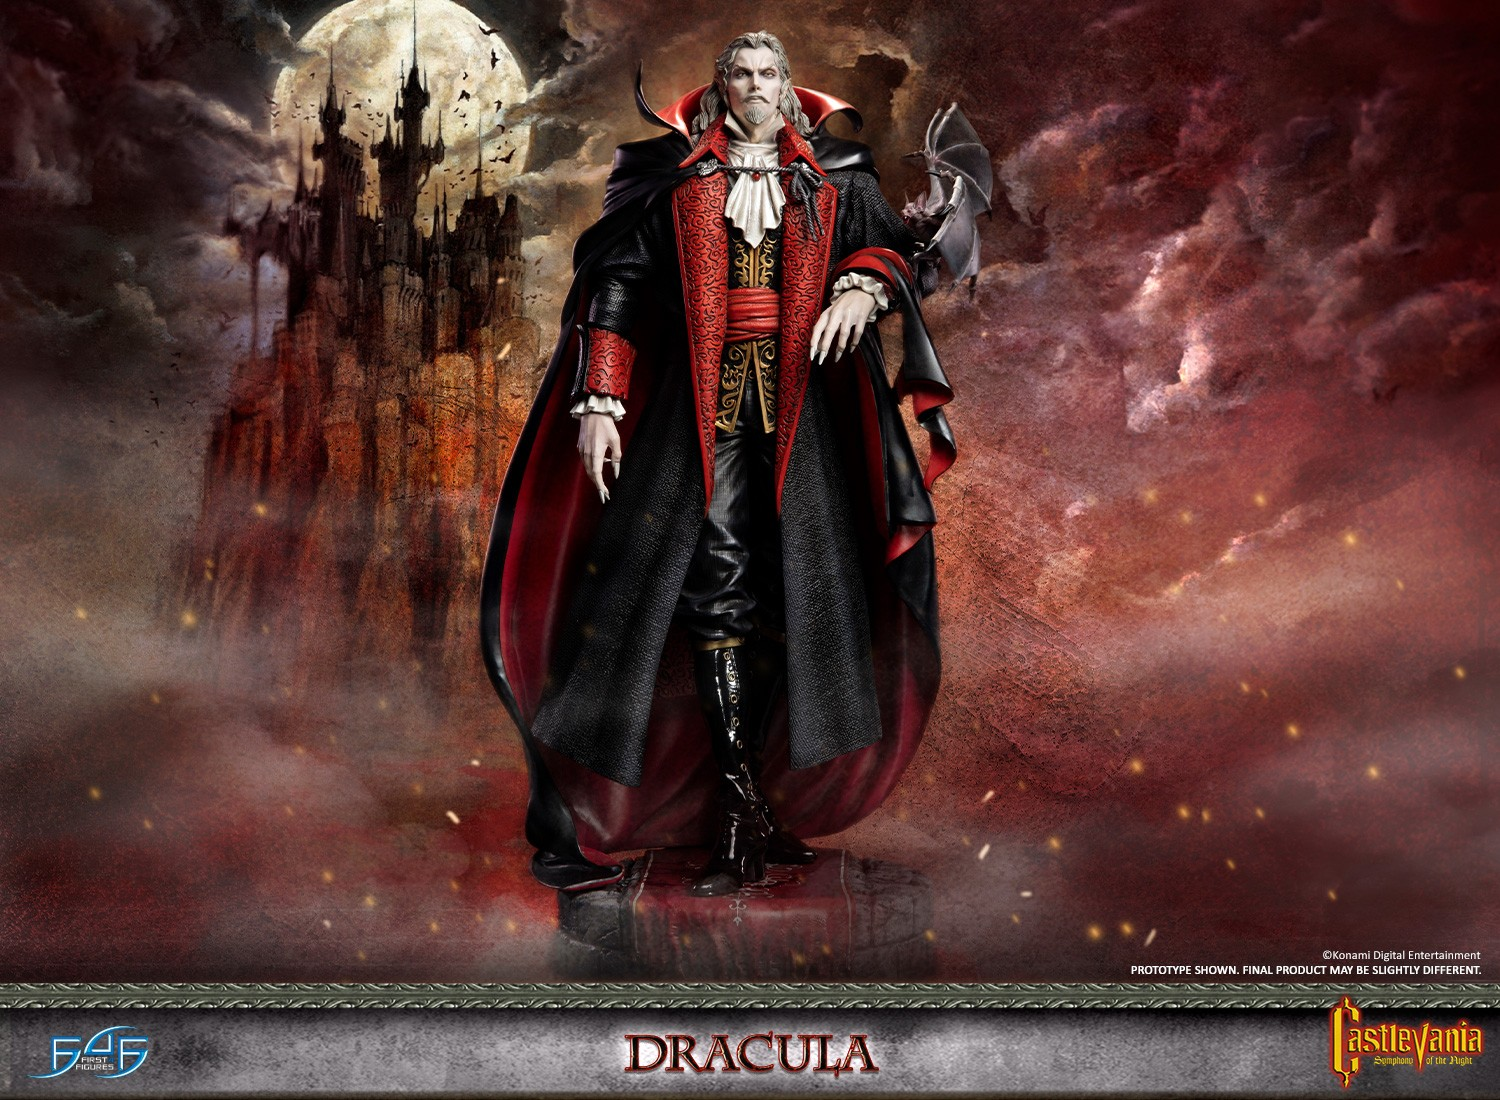 Castlevania: Symphony of the Night - Dracula Standard Edition